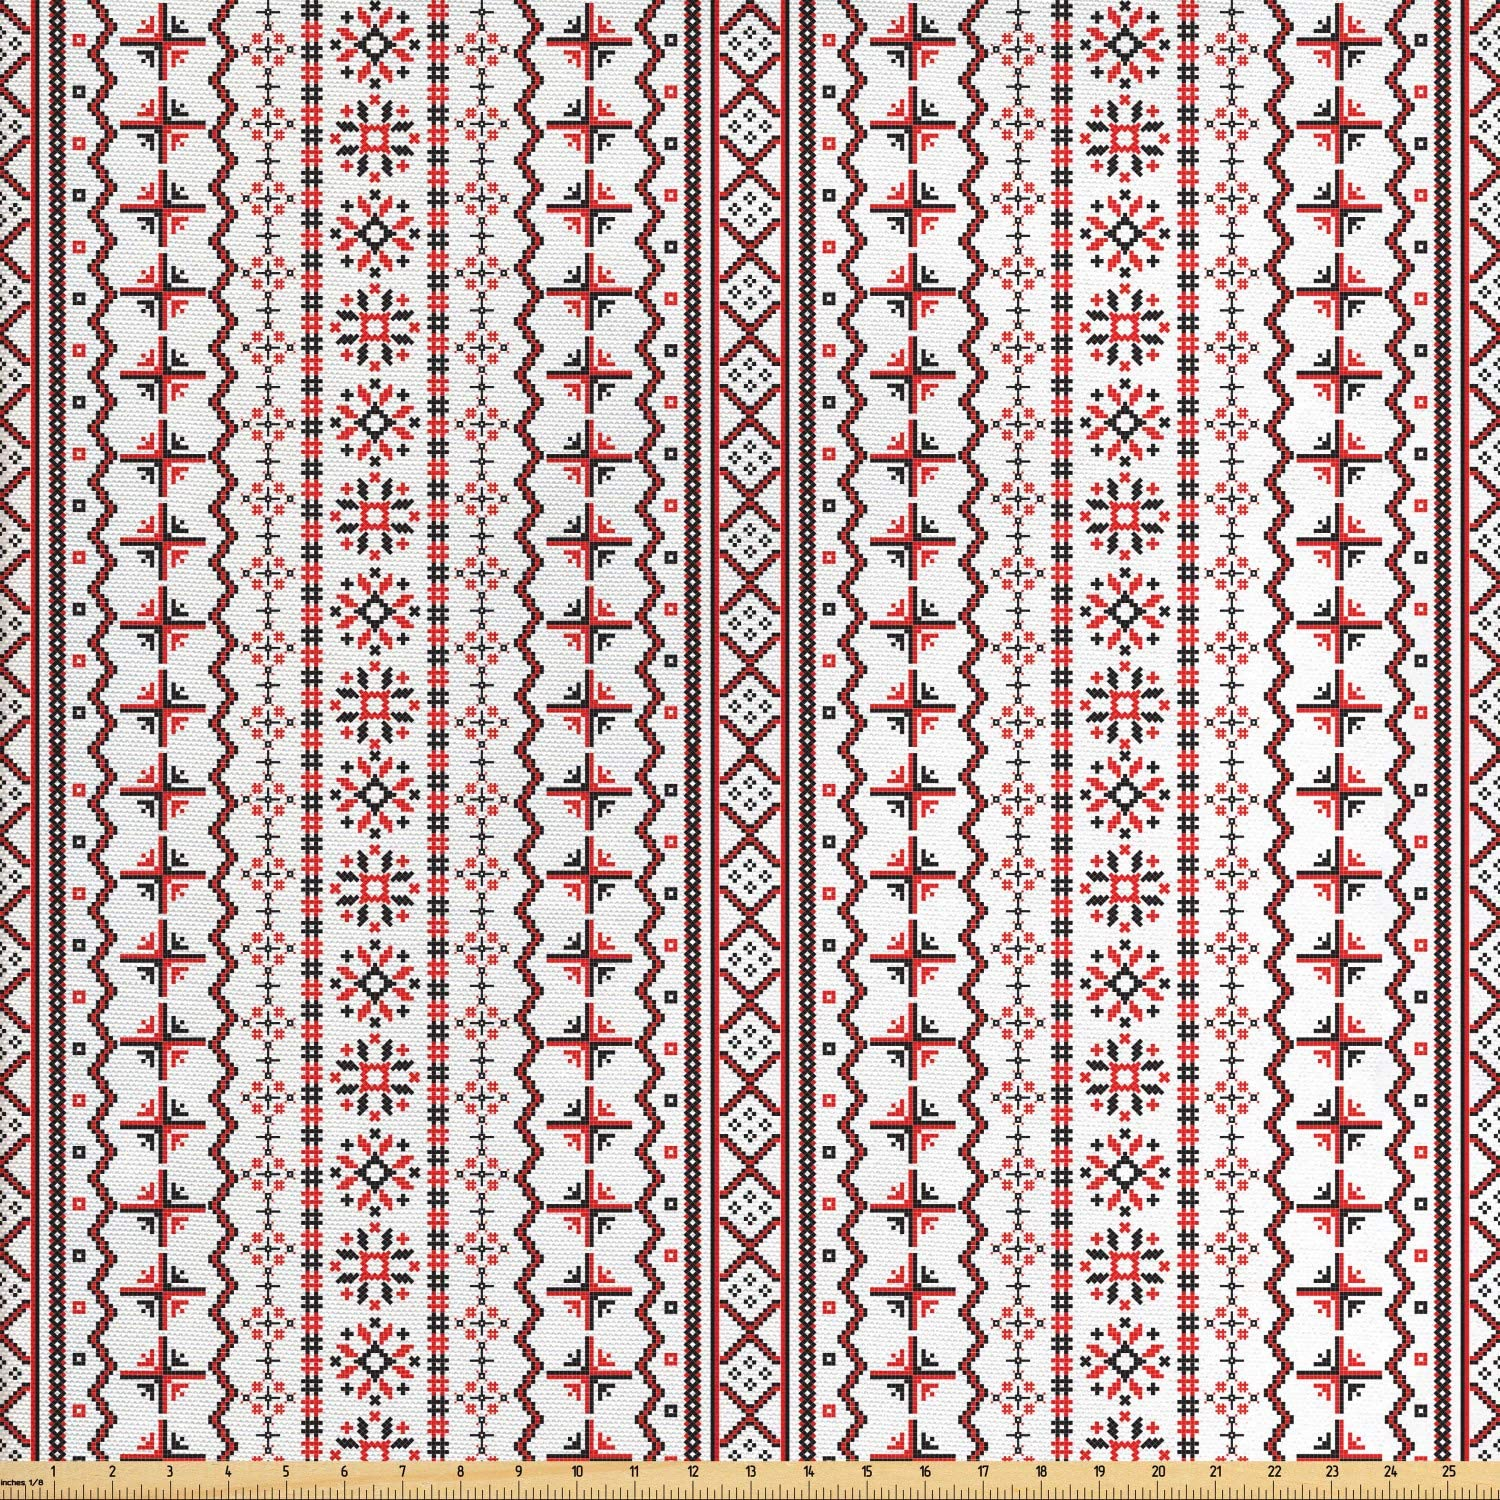 Lunarable Traditional Fabric by The Yard, Classic Eastern European Romanian Pattern with Snowflakes Chevrons Pixel Design, Decorative Fabric for Upholstery and Home Accents, 3 Yards, Black Red